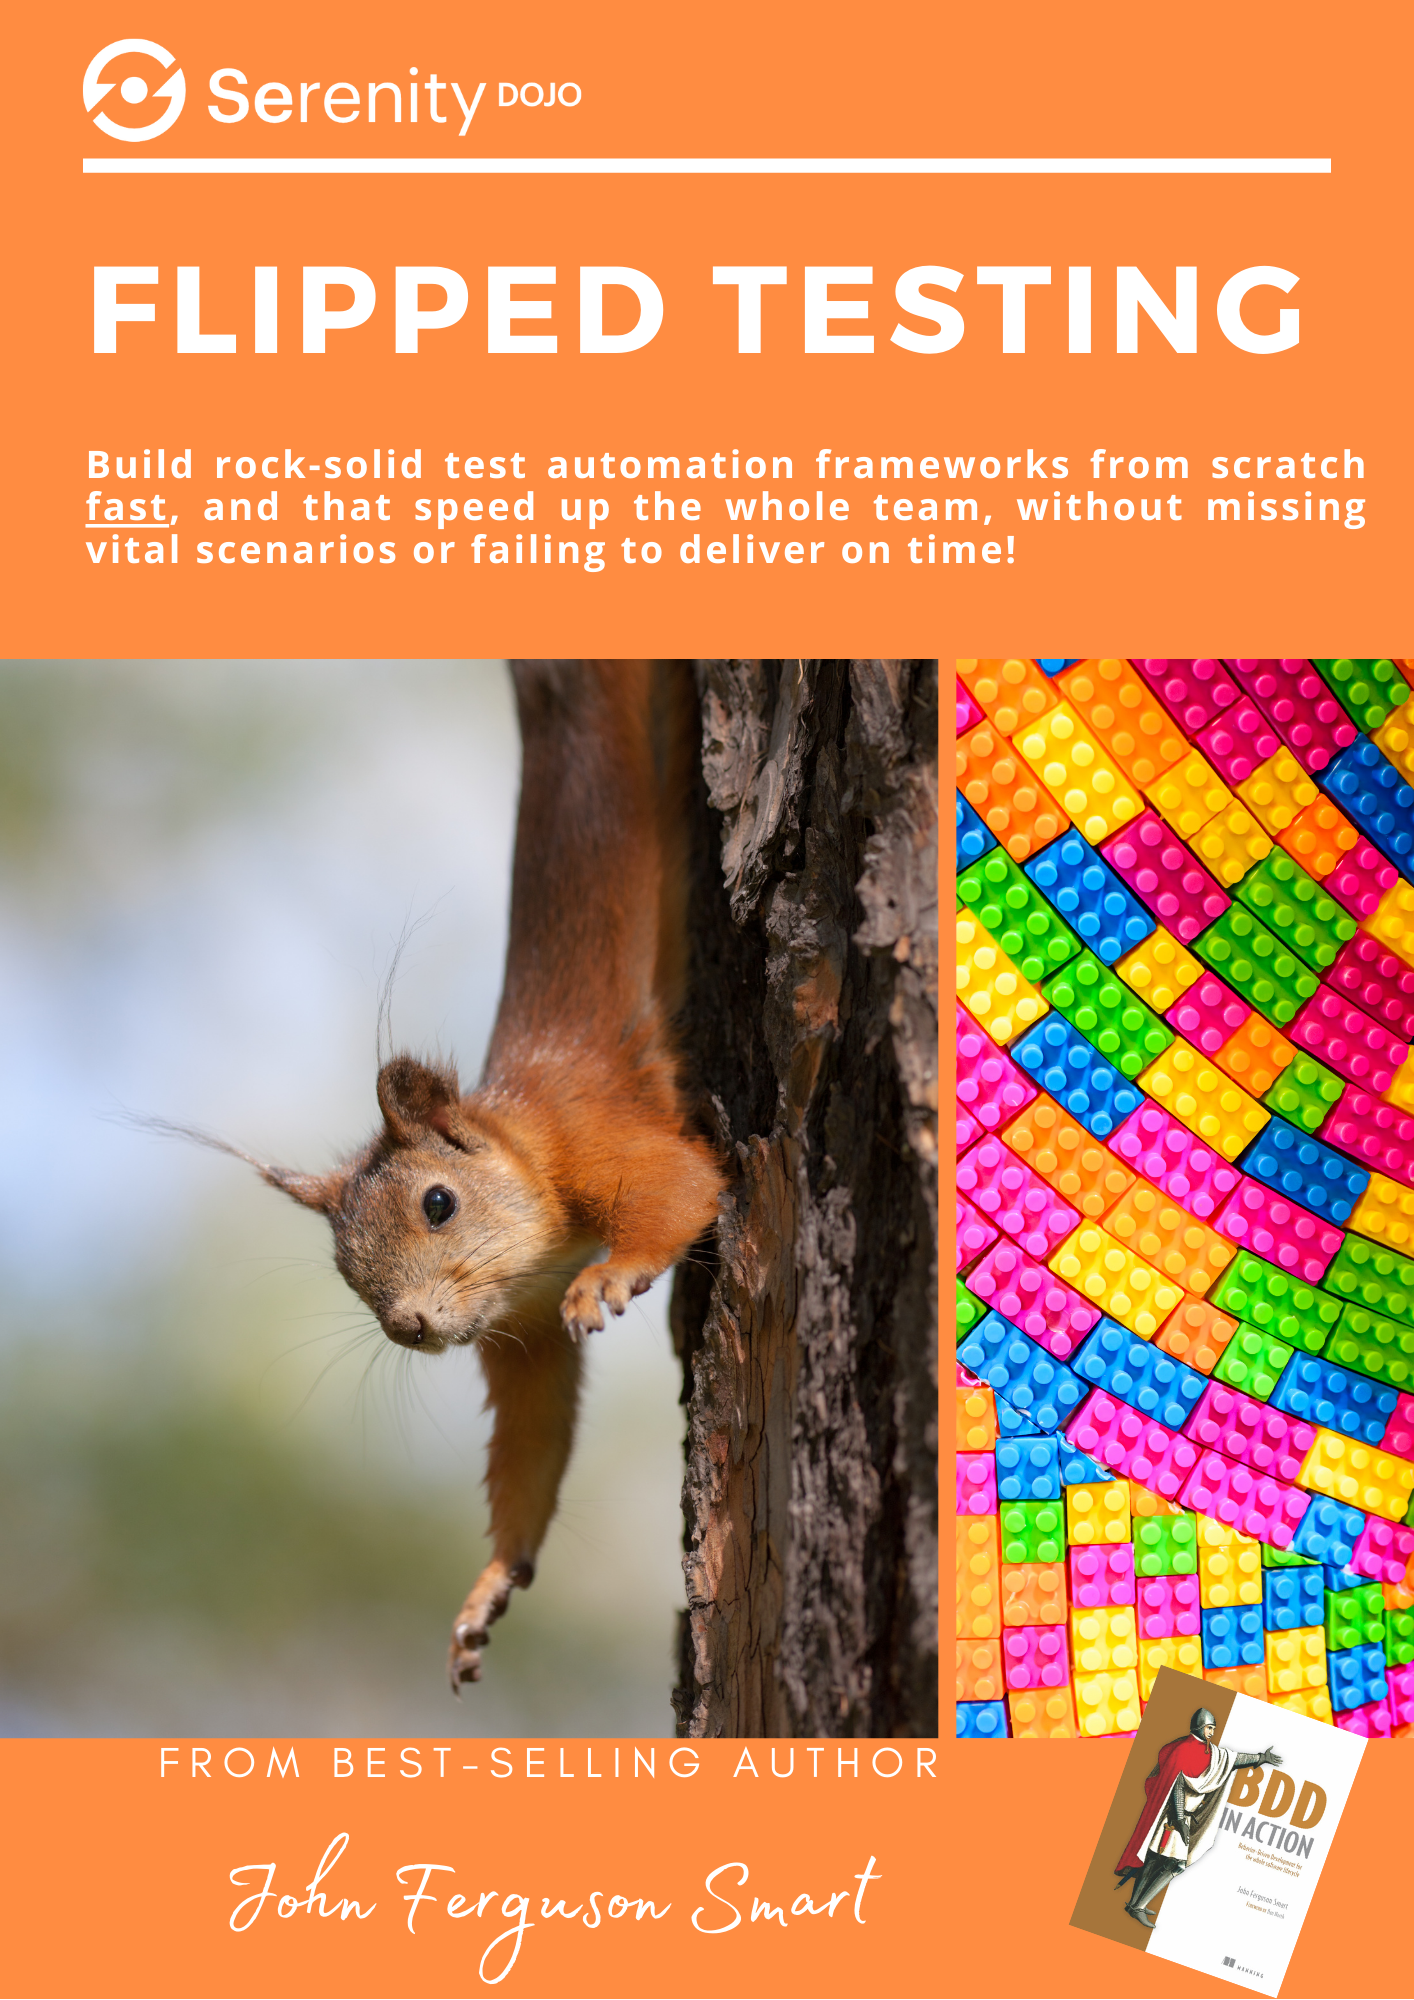 Download the Flipped Testing playbook.